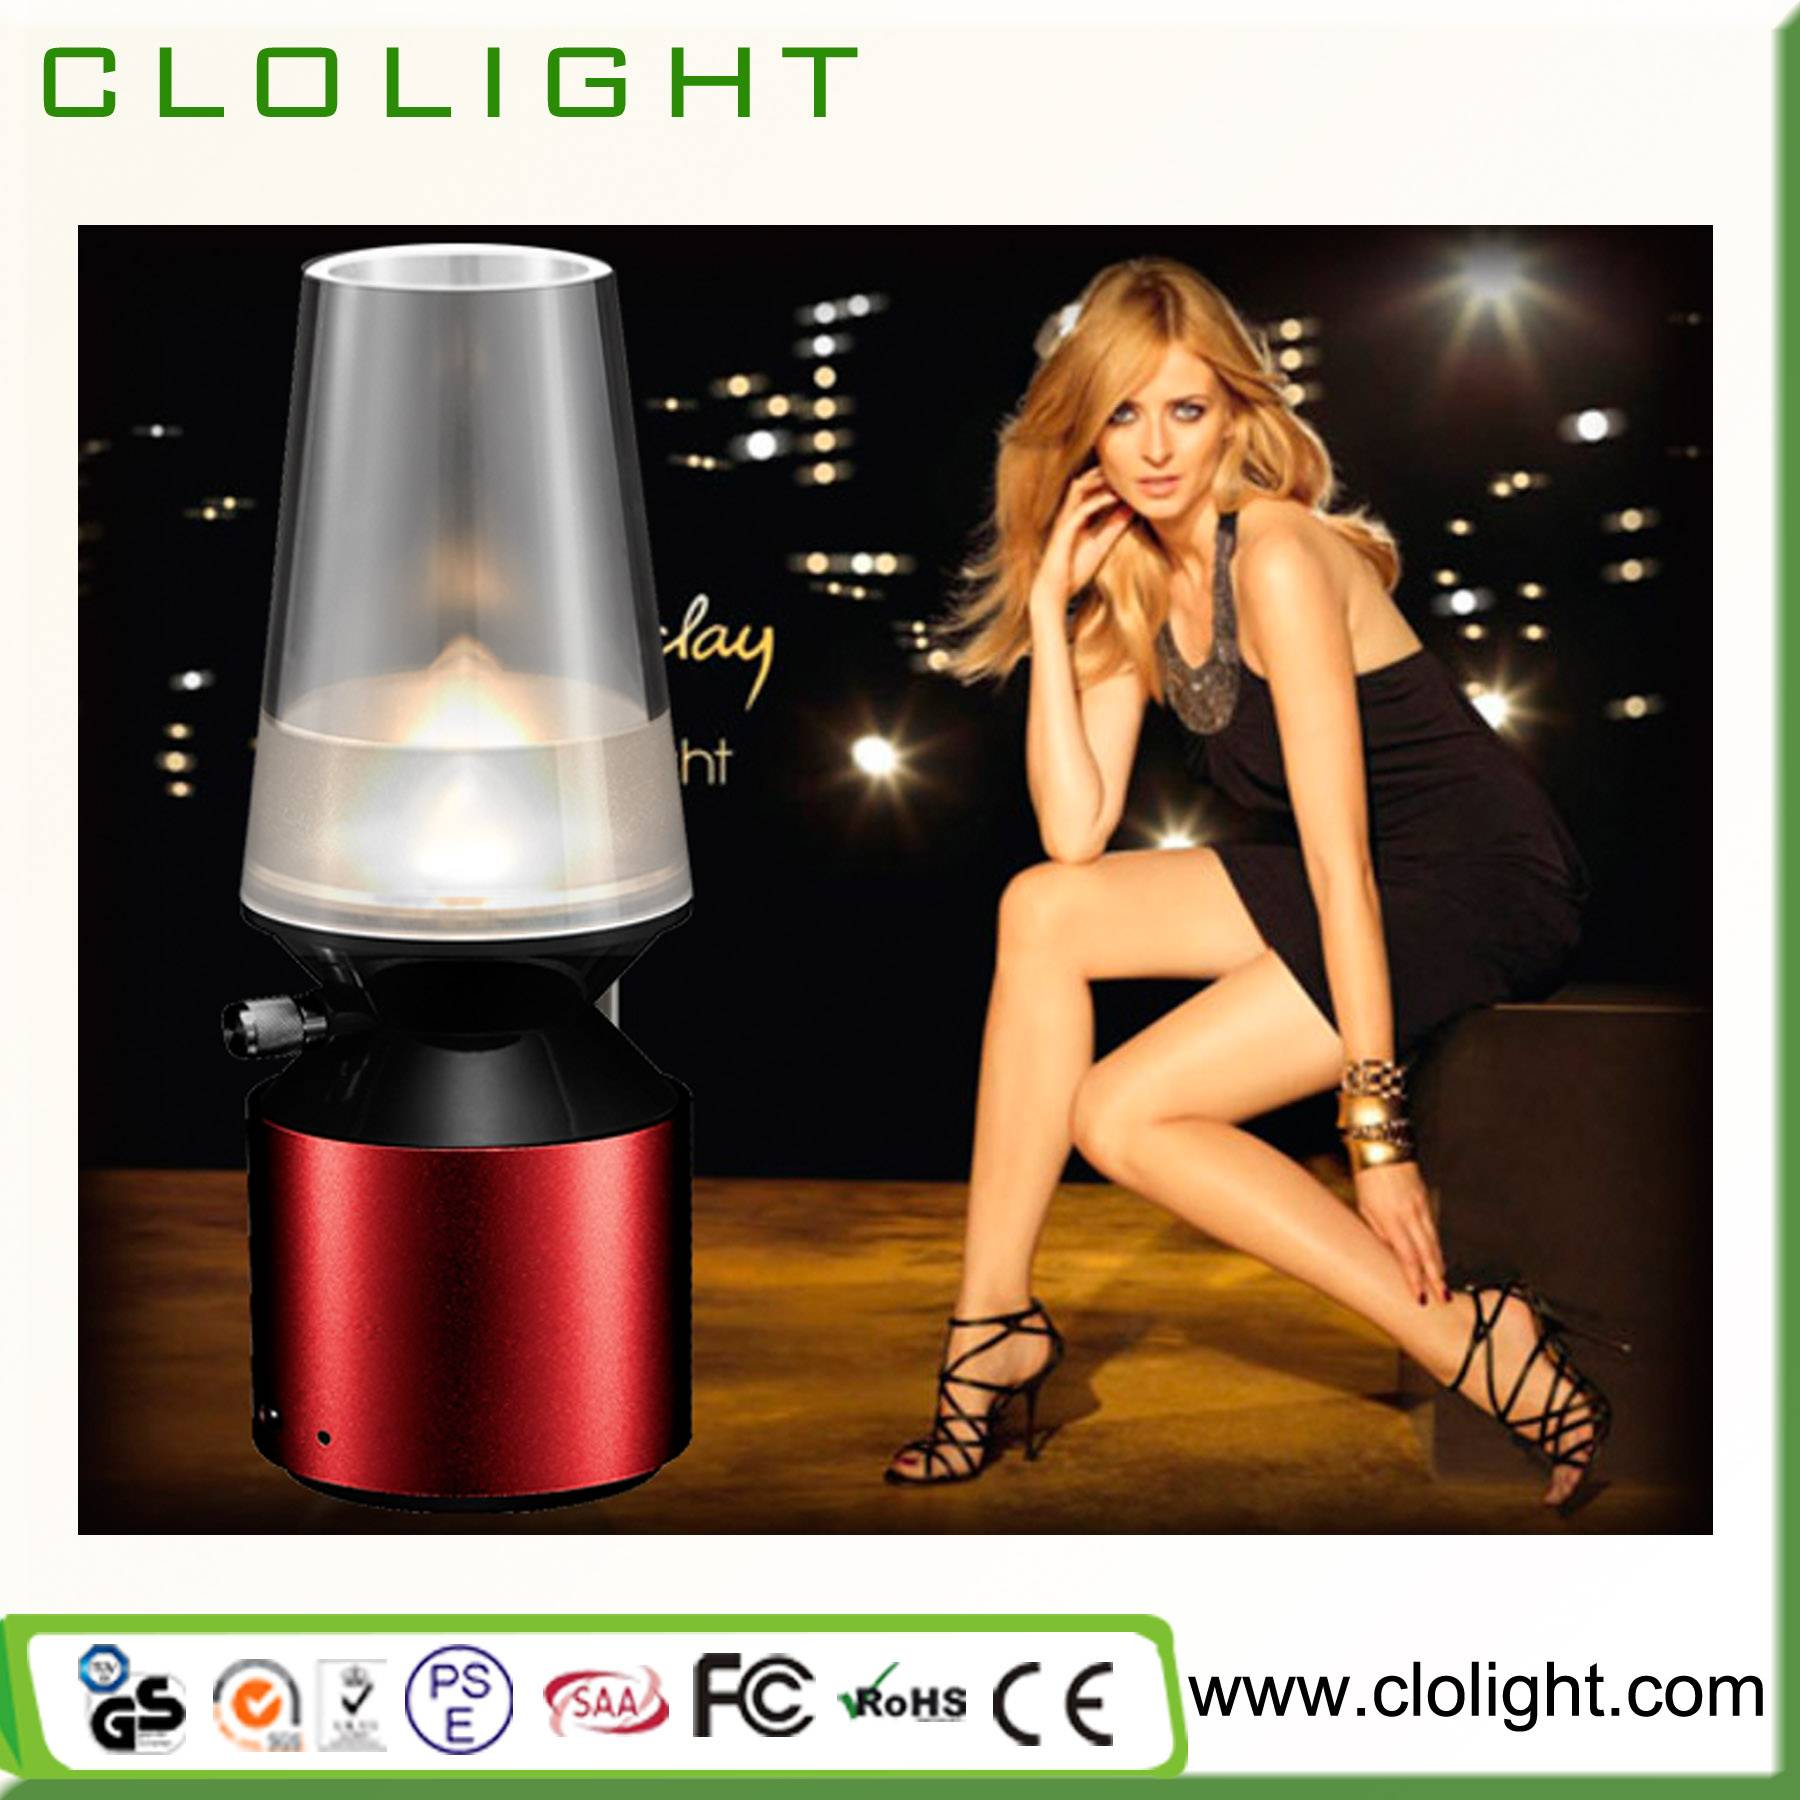 Kerosene night light USB rechargeable LED Kerosene lamp blowing control LED light